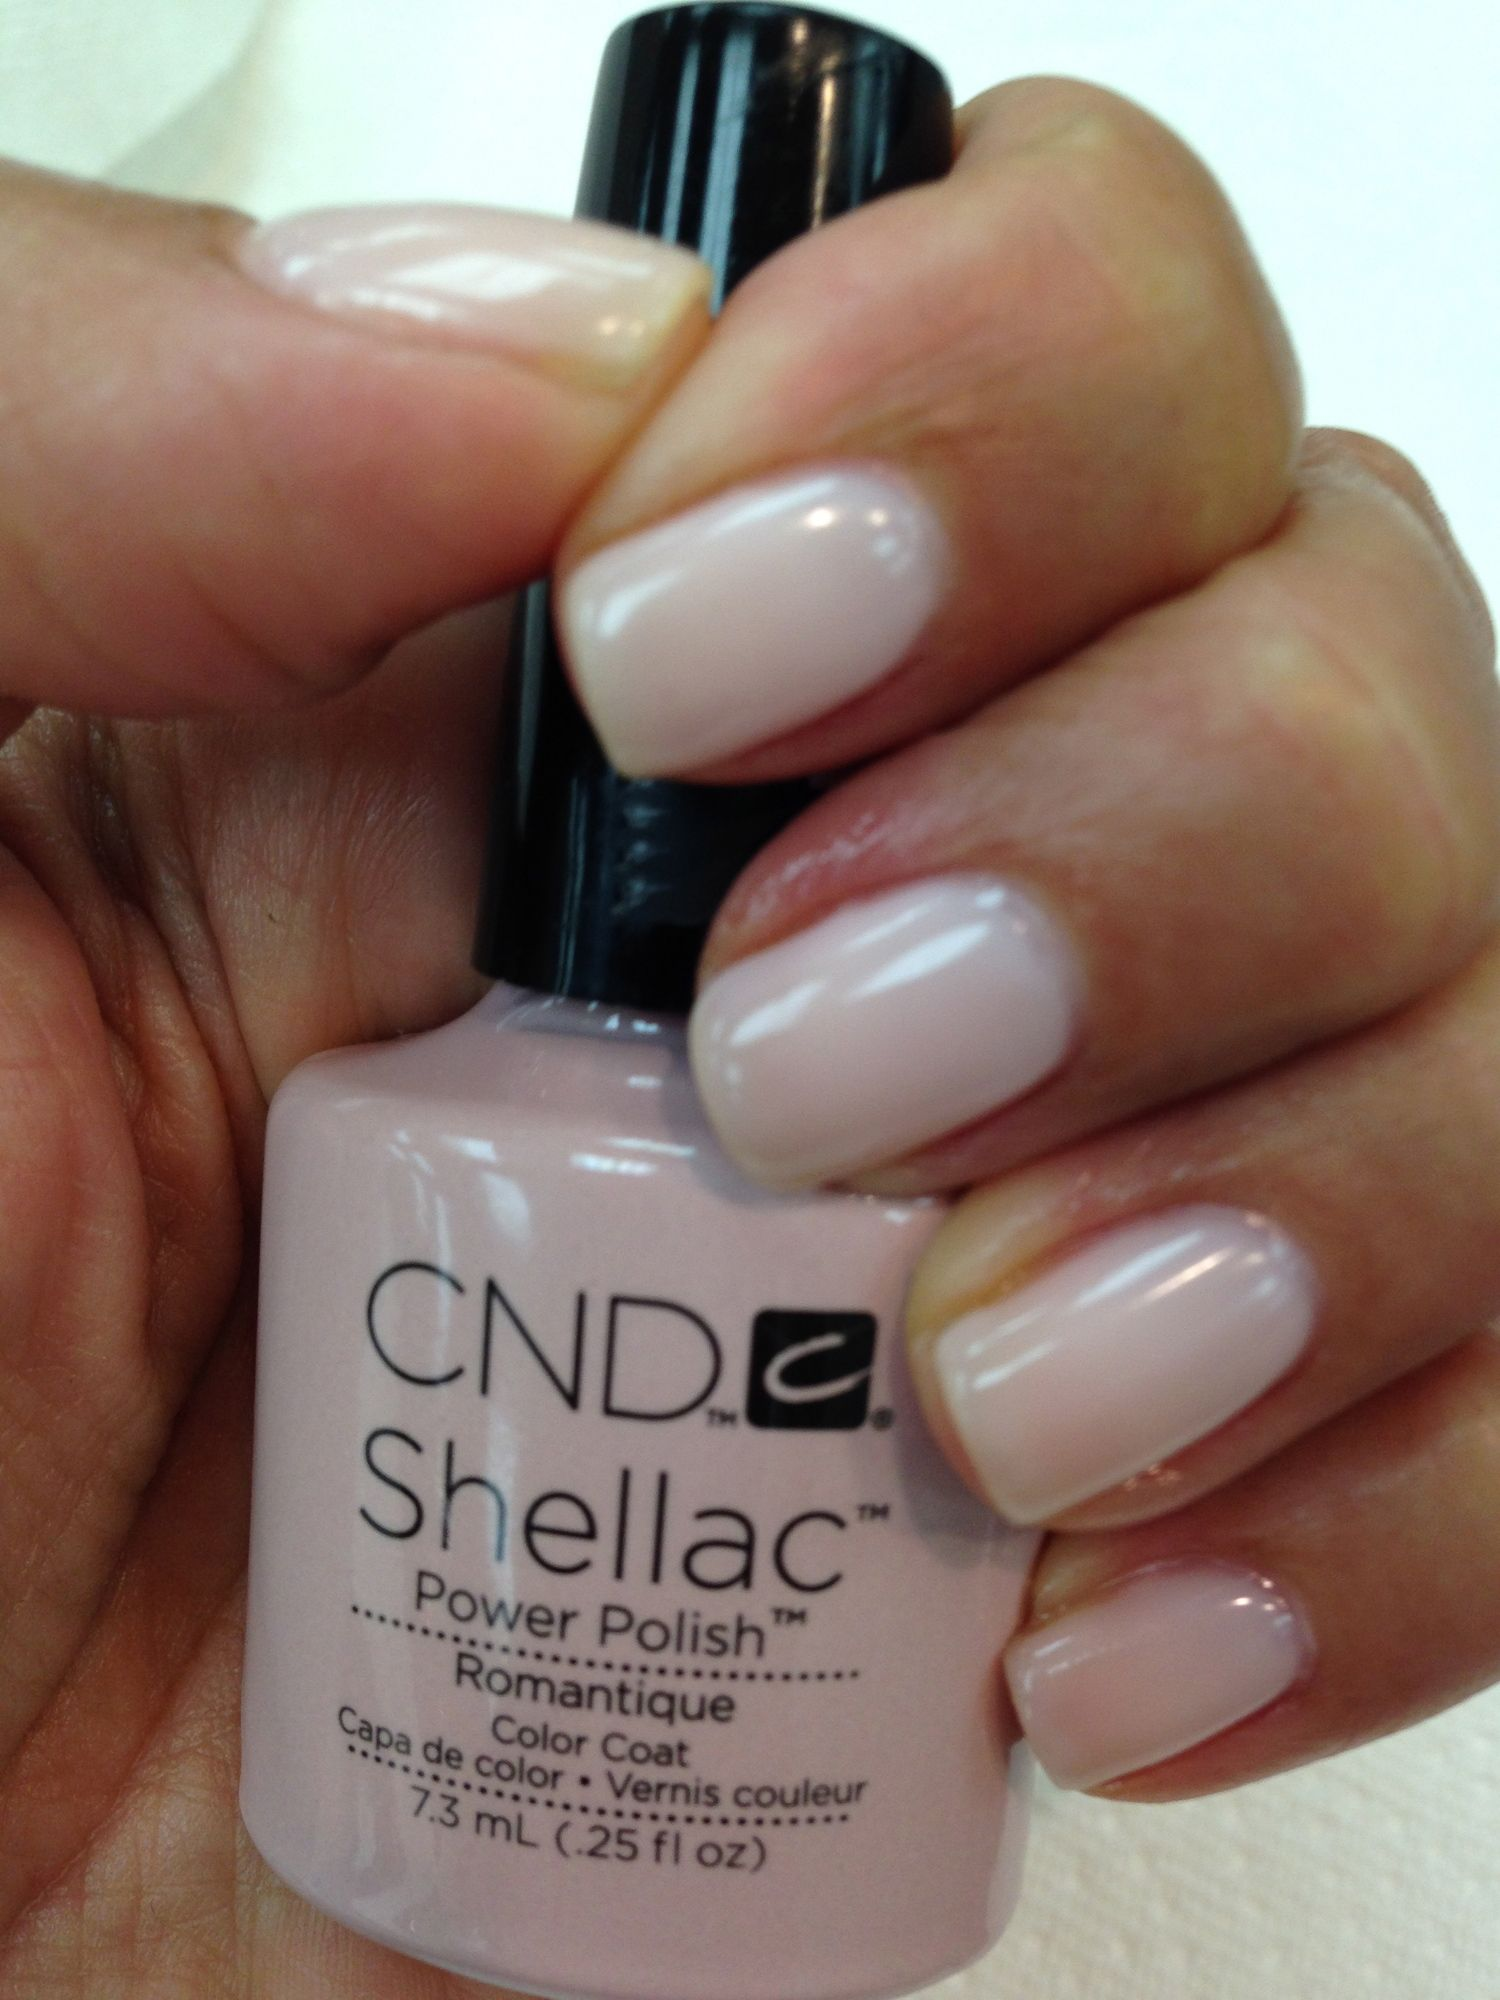 Mani Monday The Perfect Natural Manicure The Glow Girl By Melissa Meyers Shellac Nail Colors Cnd Nails Cnd Shellac Nails